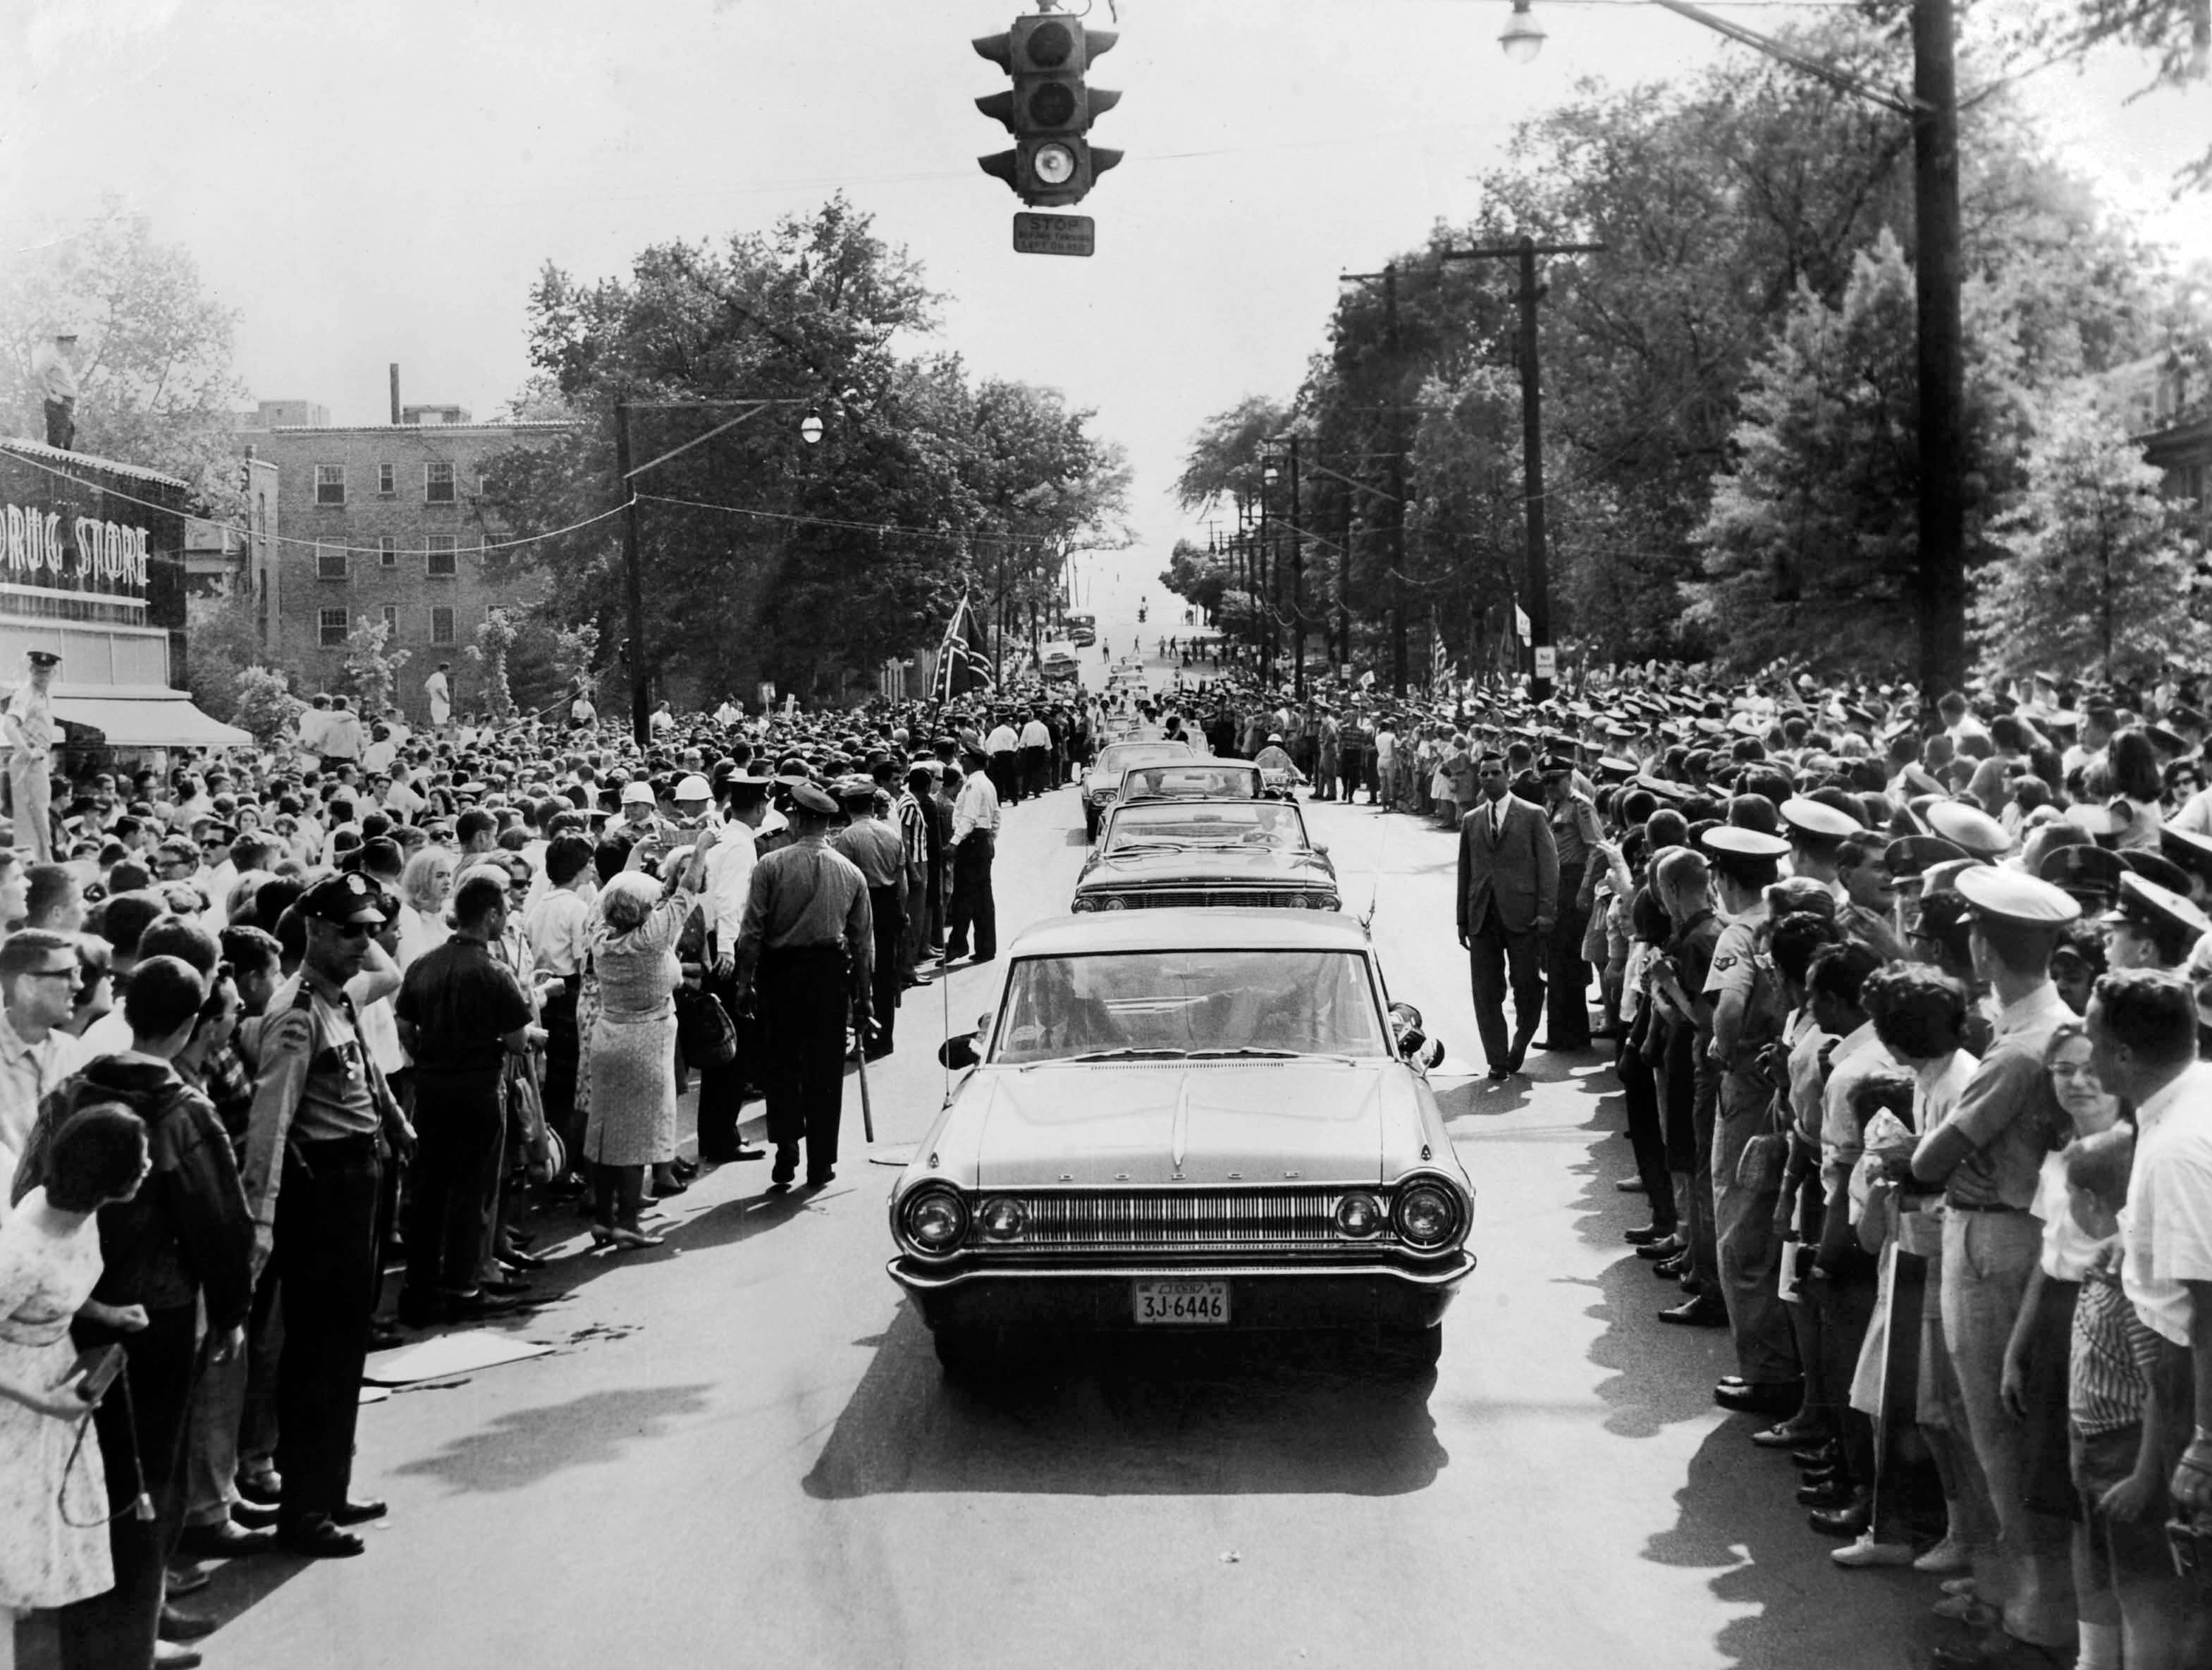 """In a May 7, 1964 photograph, President Lyndon B. Johnson's motorcade moves among a vast crowd in front of Ellis & Ernest Drugstore on Cumberland Avenue. The News-Sentinel photo caption noted that the President's car had already passed and """"the eyes of the thousands of well-wishers are trained on the Miss Knoxville contestants riding in convertibles."""""""